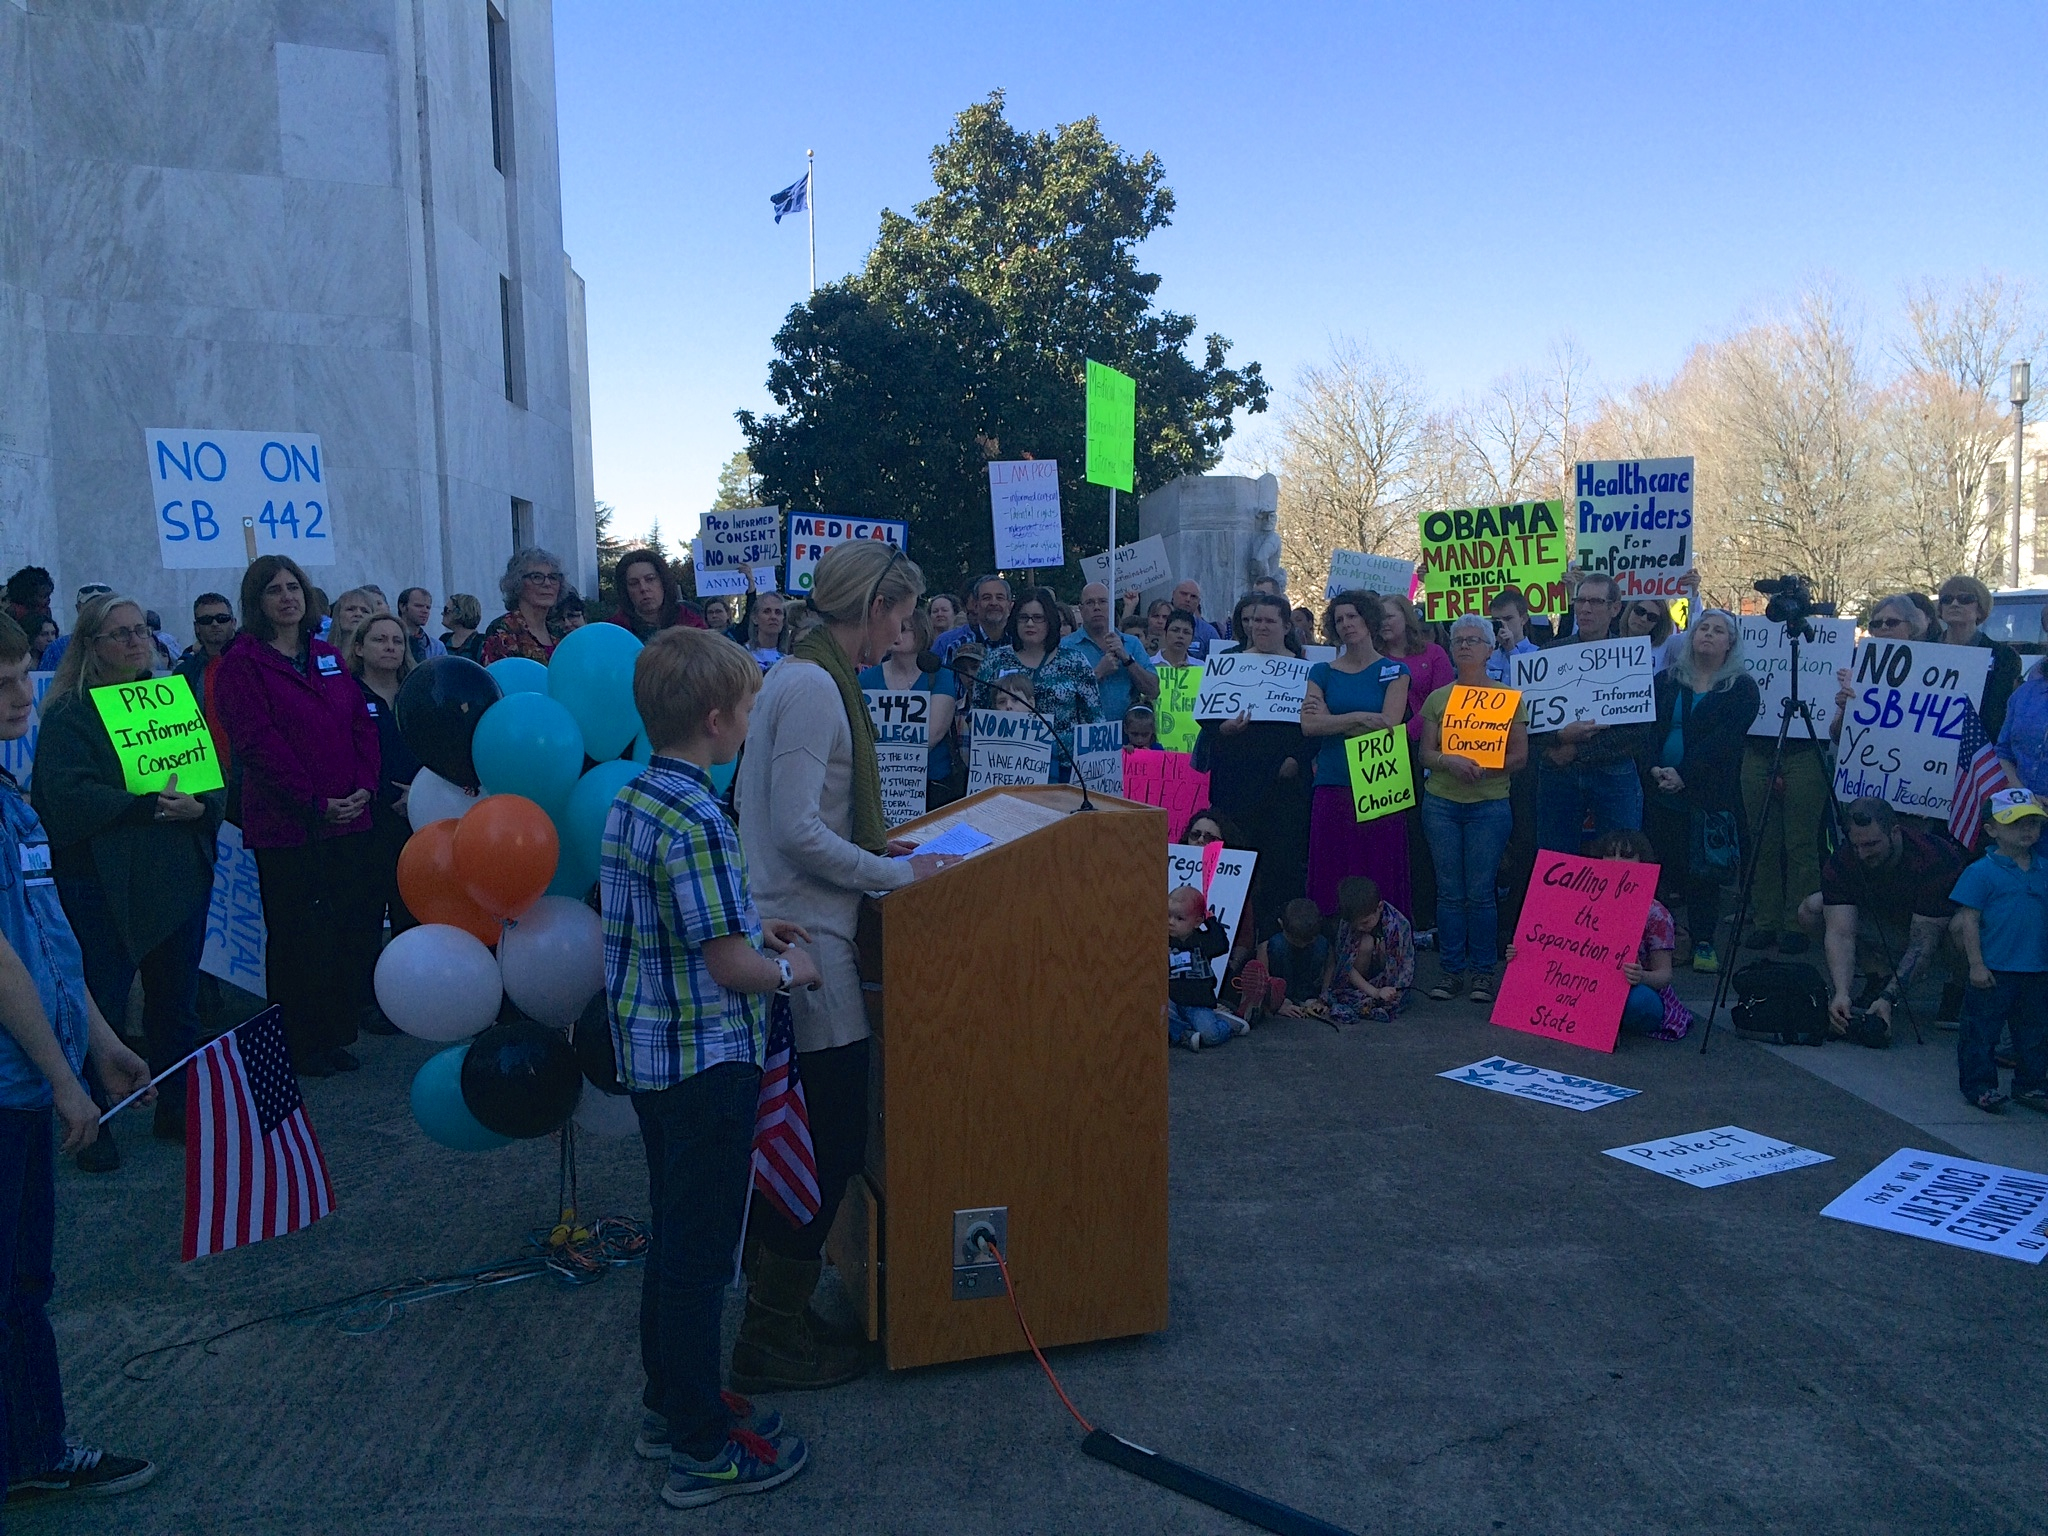 Anna Houppermans, a mom of three and third generation Oregonian, speaking in favor of medical freedom